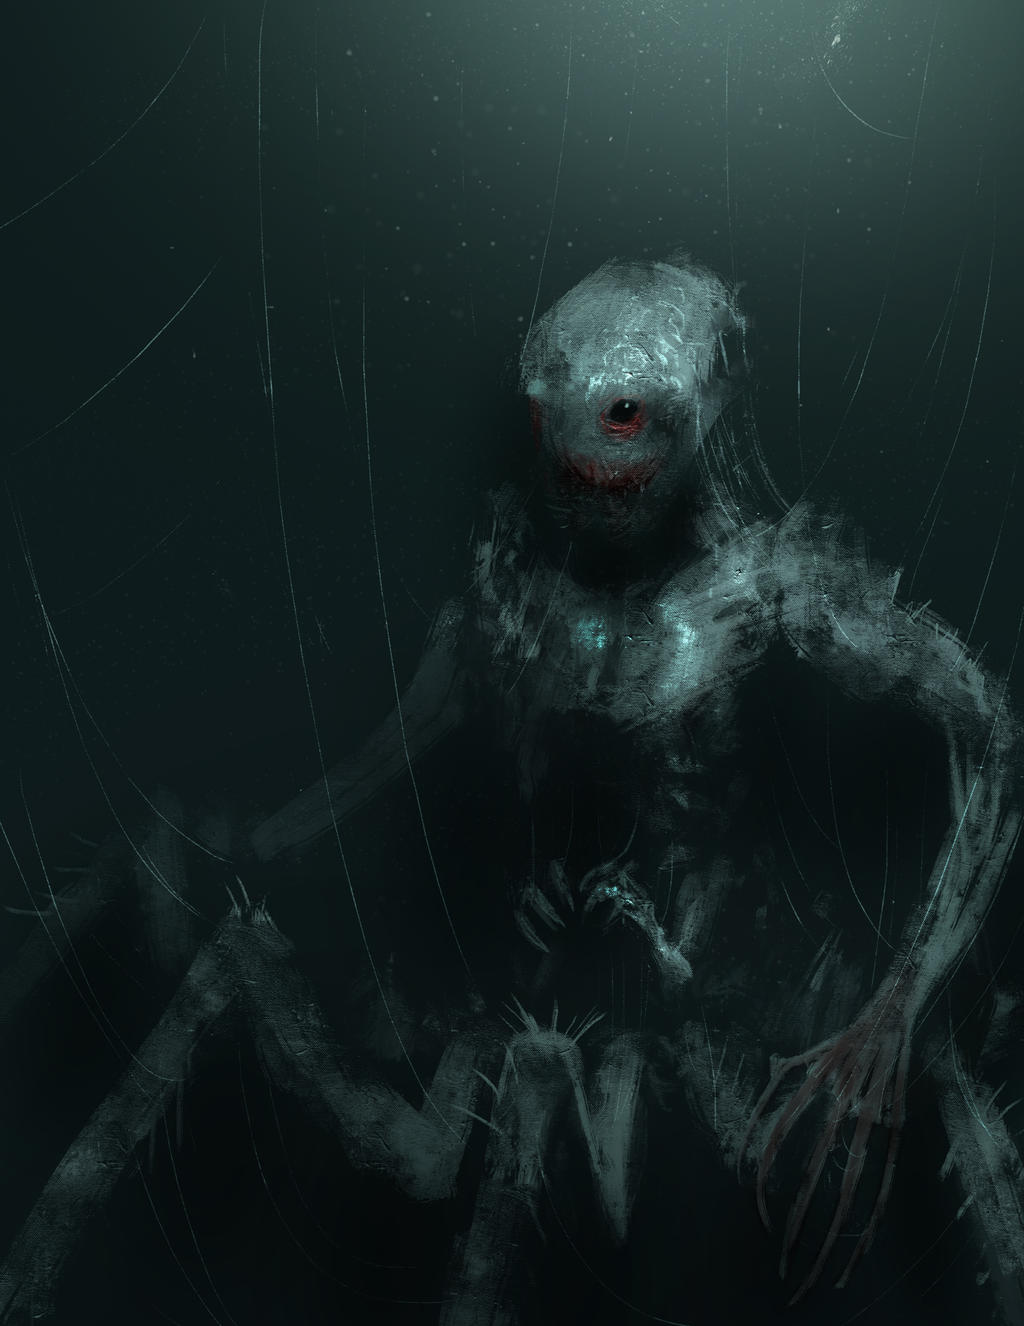 Spider demon by edsfox